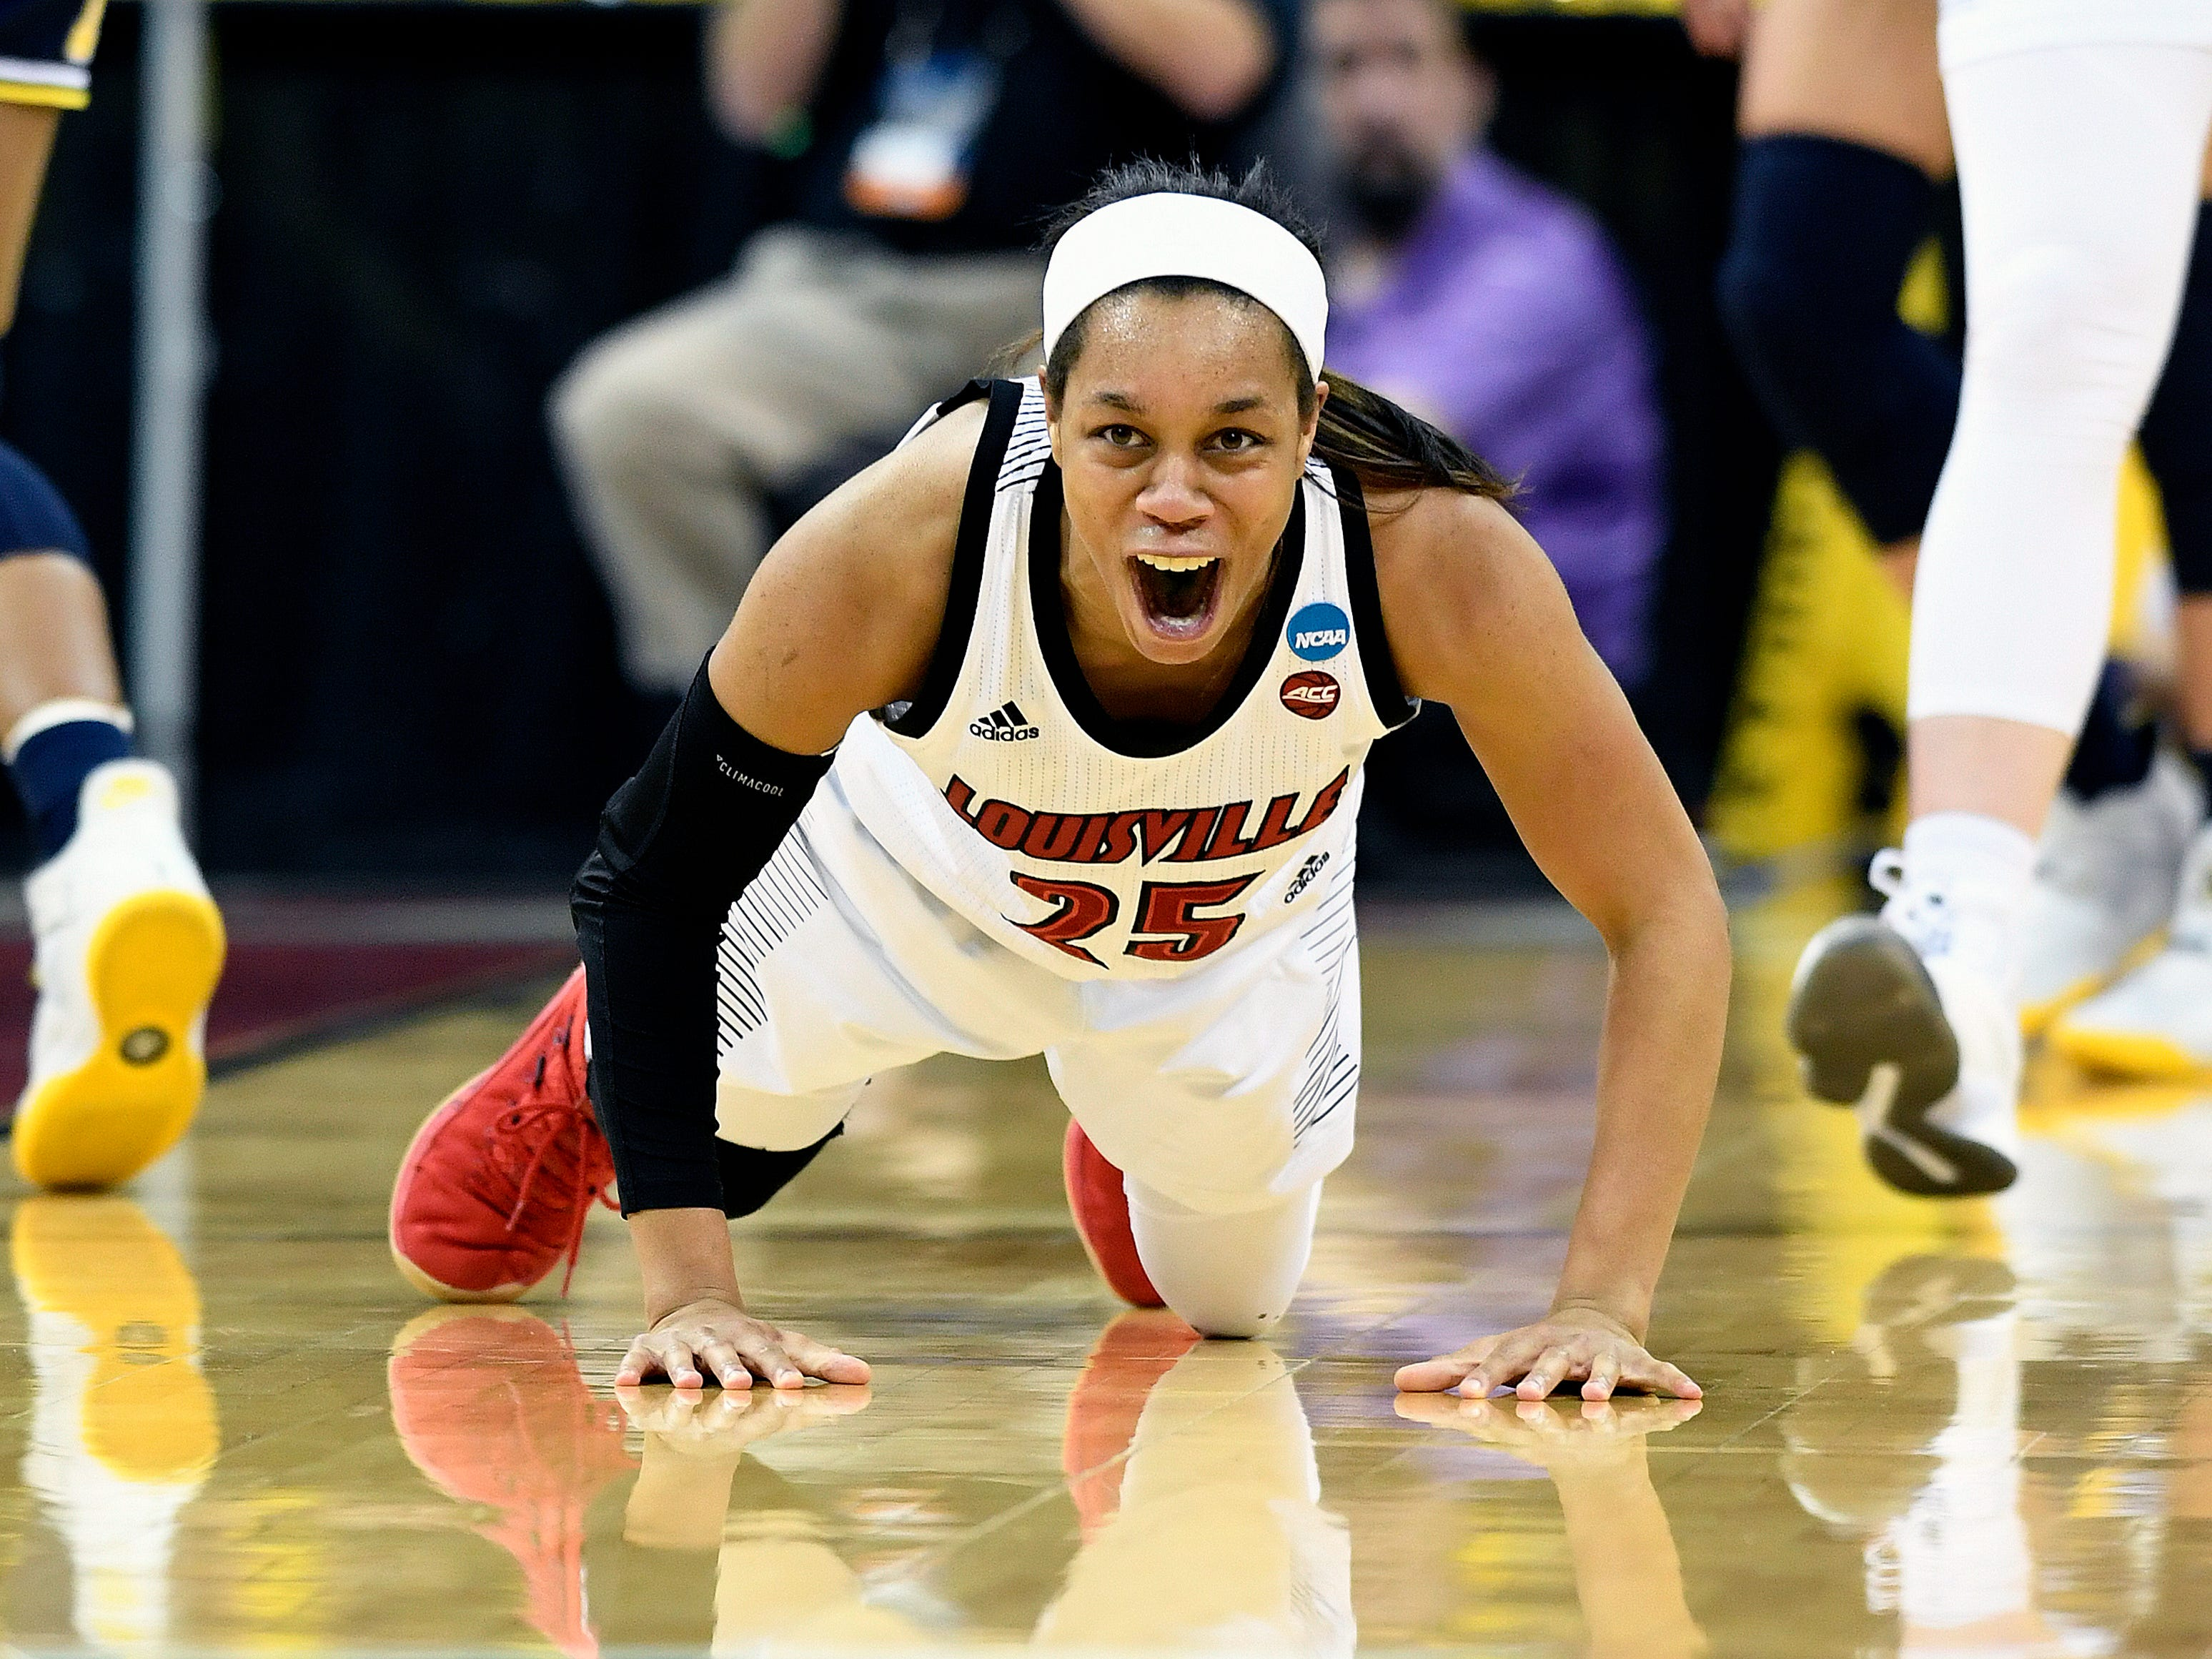 Louisville guard Asia Durr shouts as she gets off the floor after being fouled.